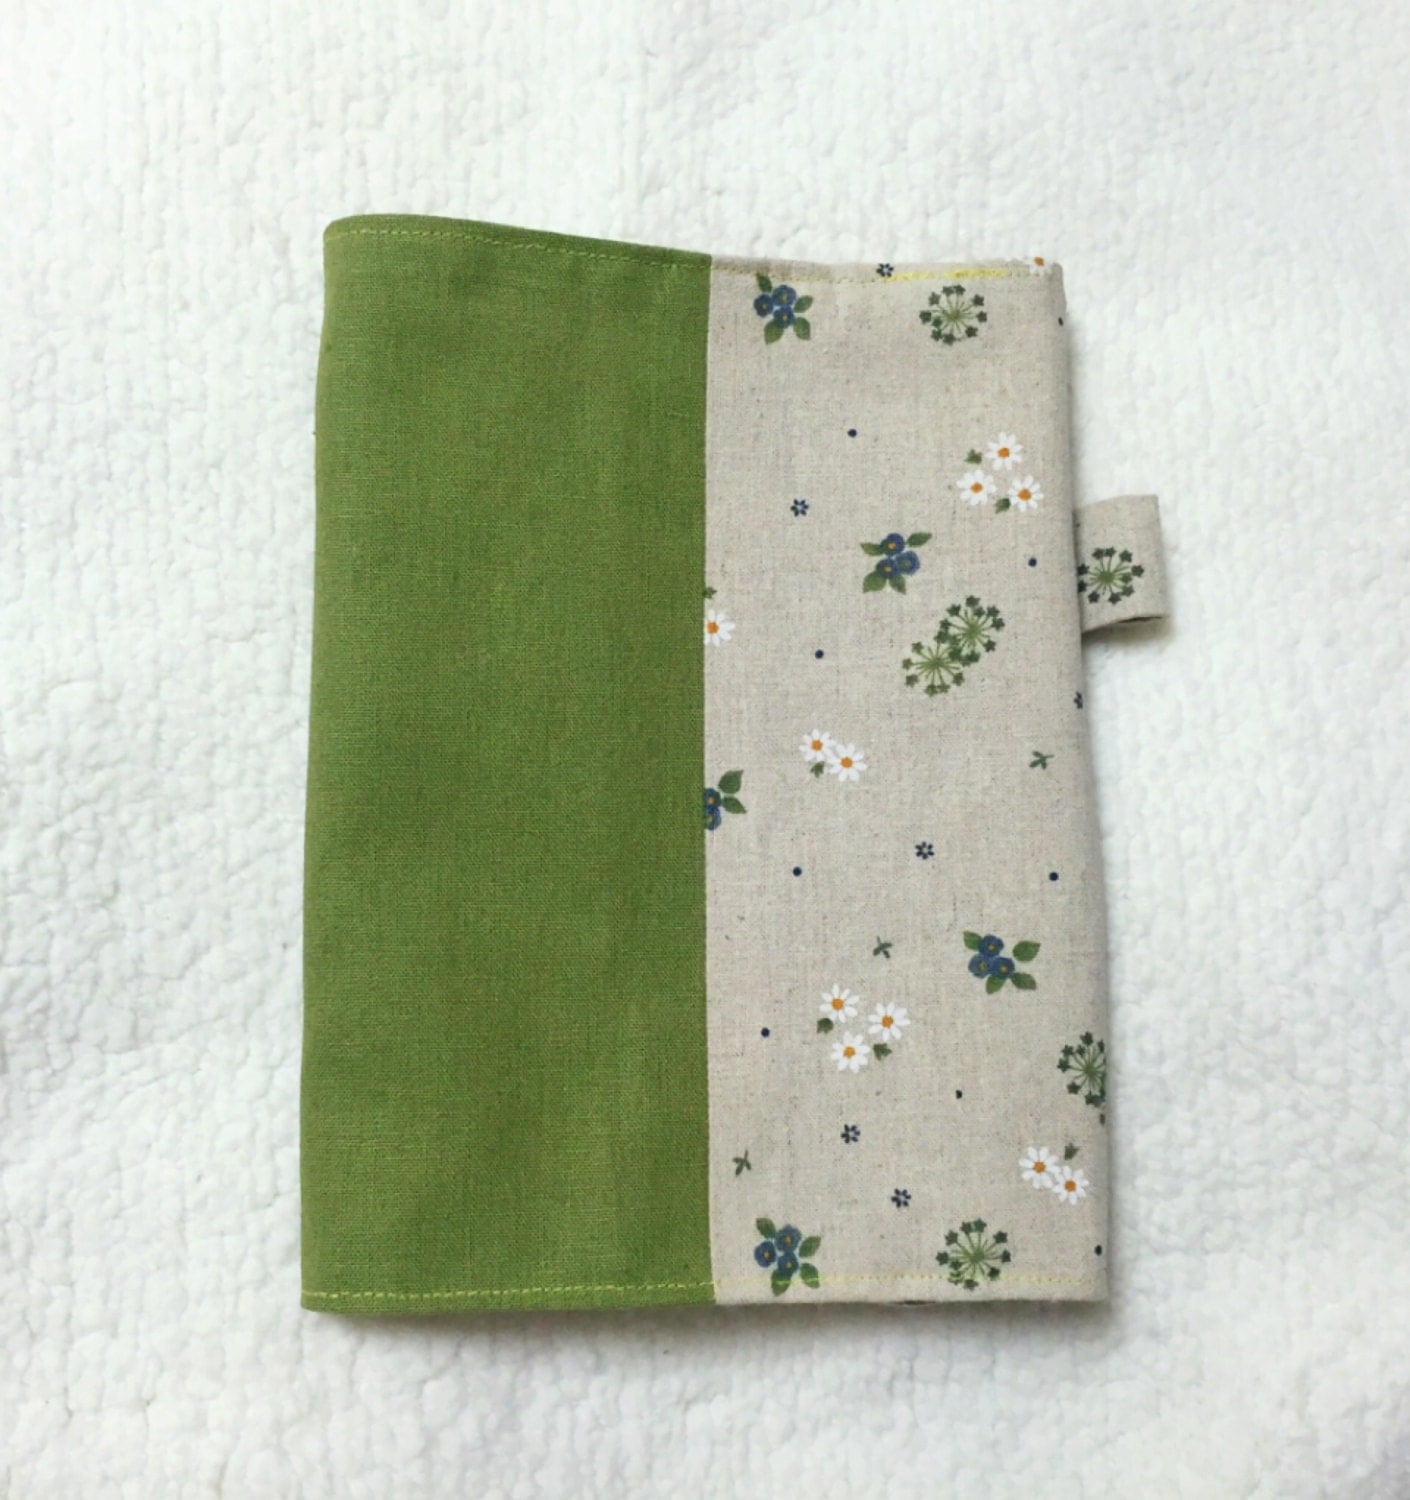 Make Adjustable Fabric Book Cover : Adjustable fabric bookcover with little flowers in beige and